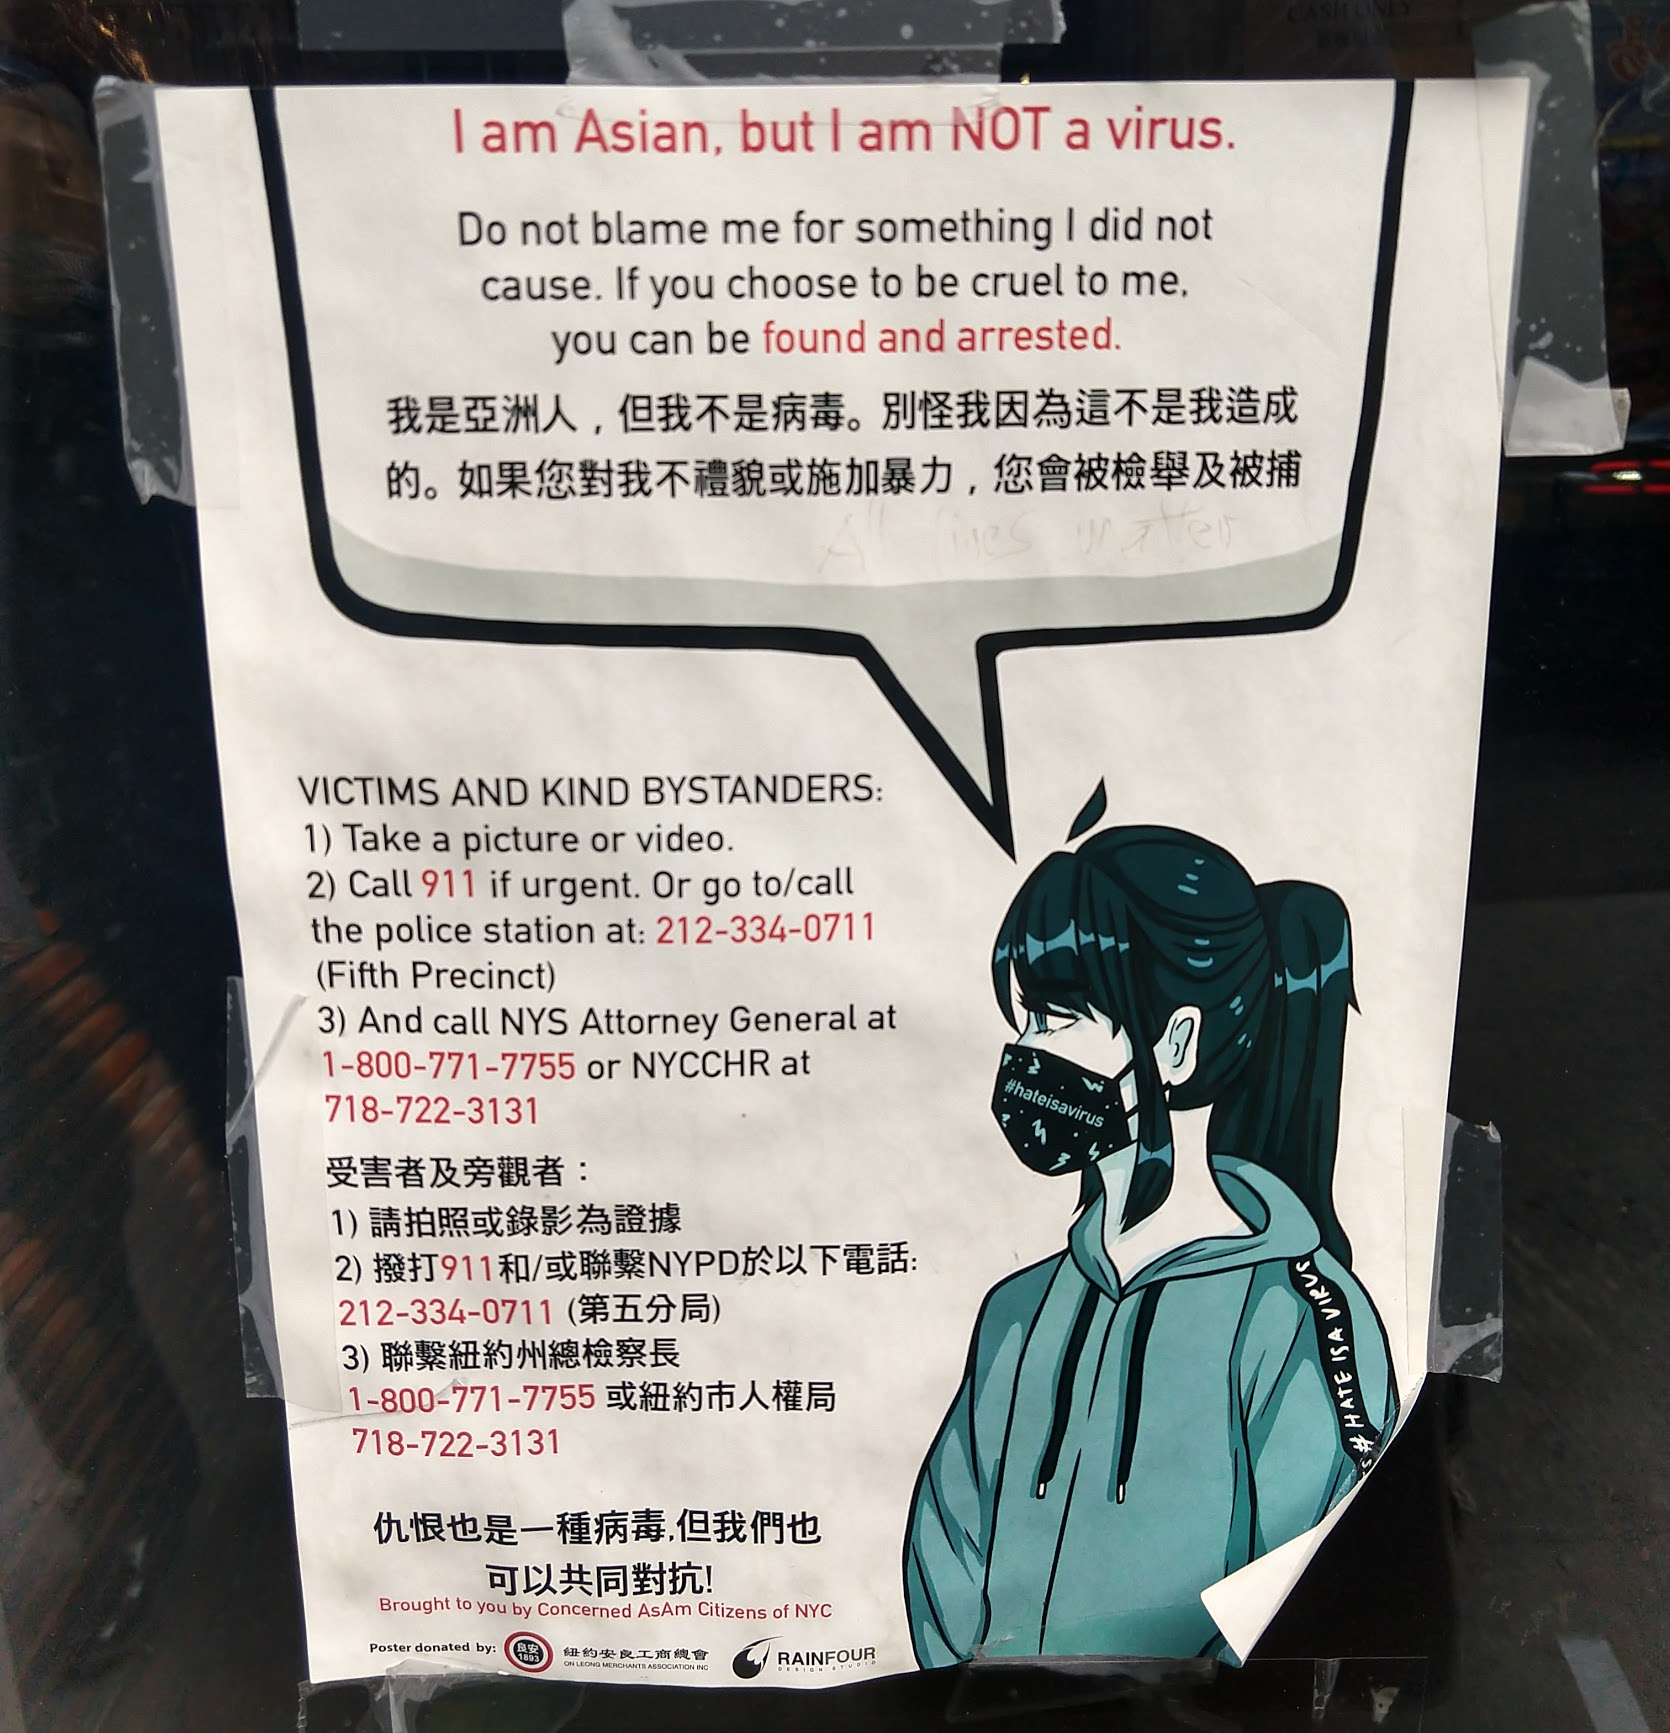 An anti-racism poster photographed on a storefront window in Manhattan's Chinatown neighborhood during the COVID-19 pandenmic